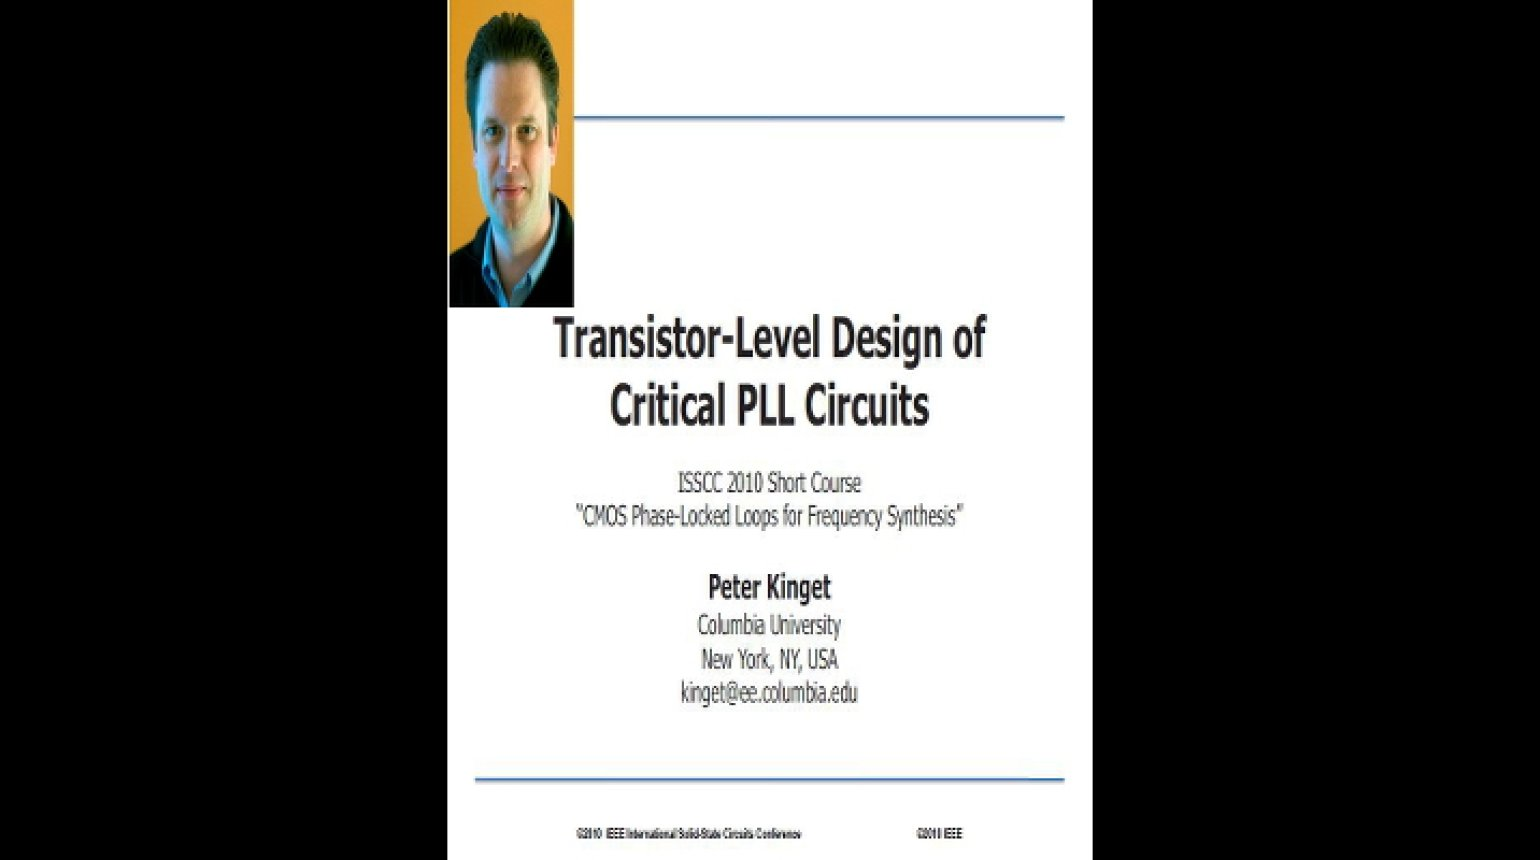 Transistor-Level Design of Critical PLL Circuits Video